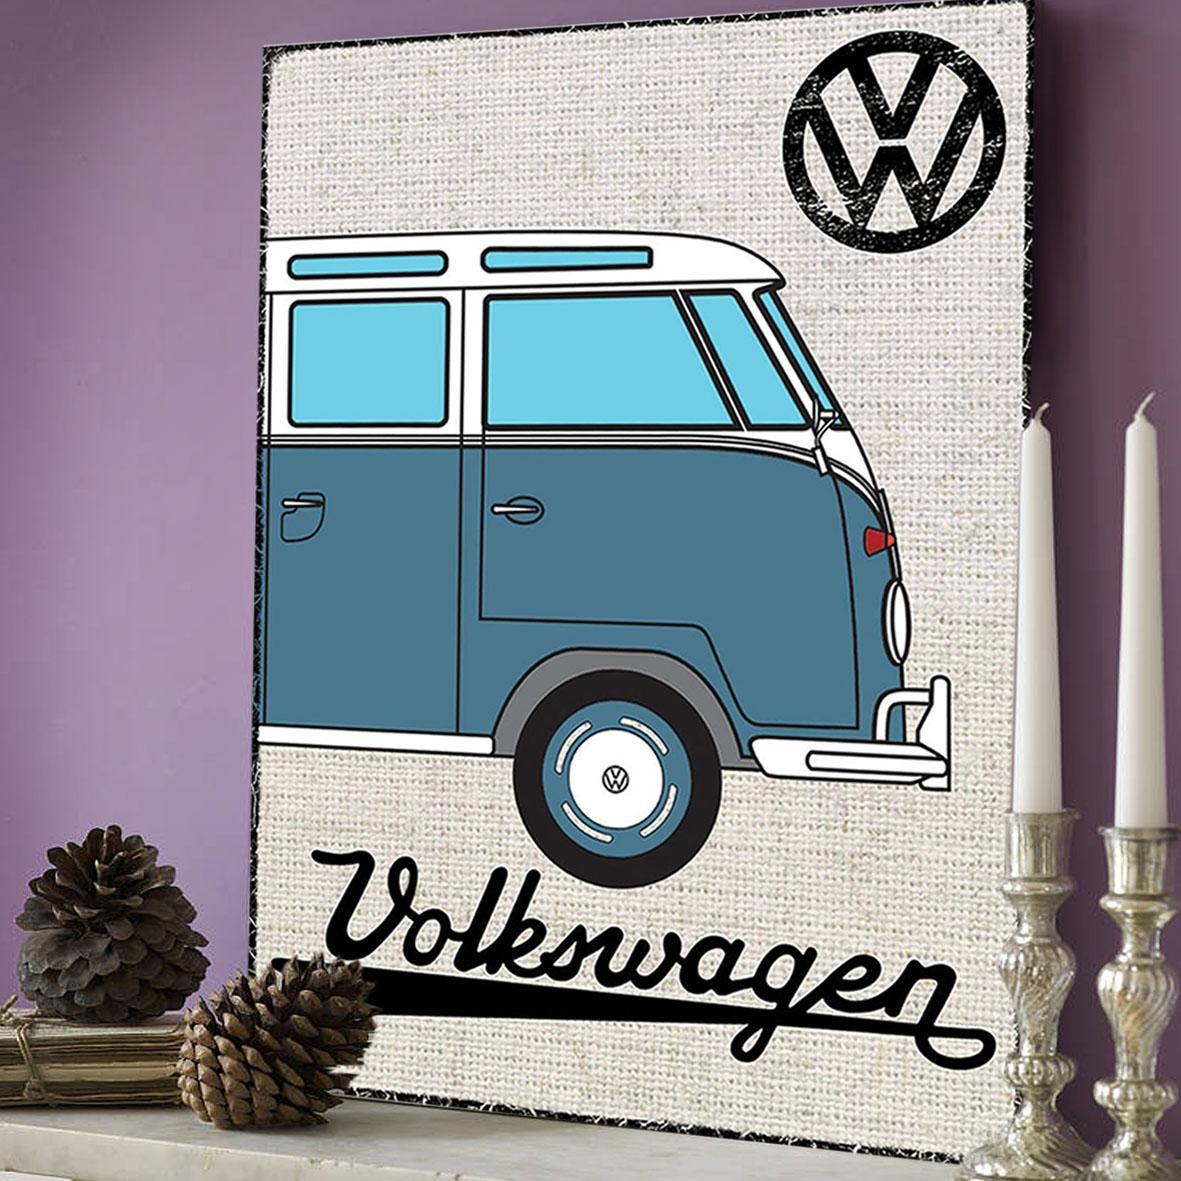 Official Vw Blue Campervan Metal Wall Art Plaque / Sign 41Cm X With Regard To Campervan Metal Wall Art (Image 11 of 20)